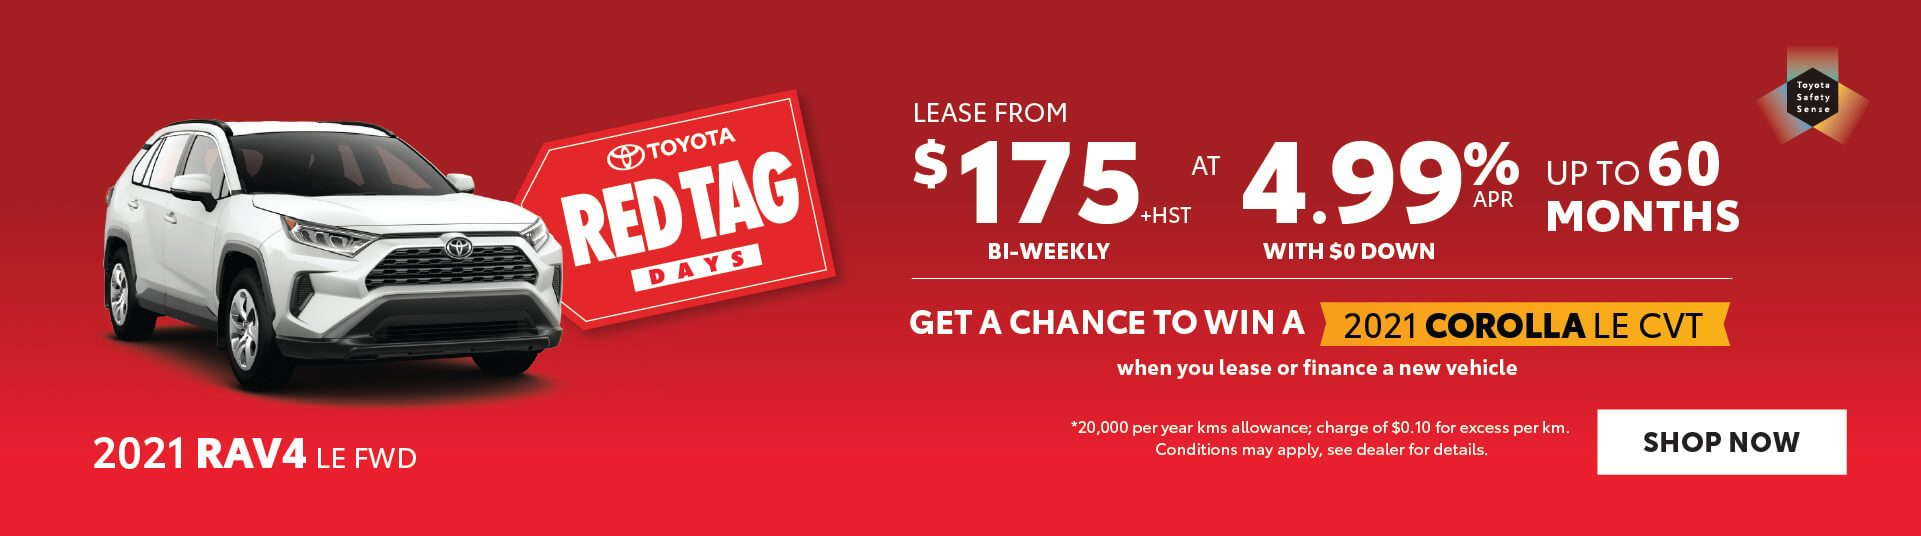 Red Tag Days RAV4 offer Georgetown Toyota